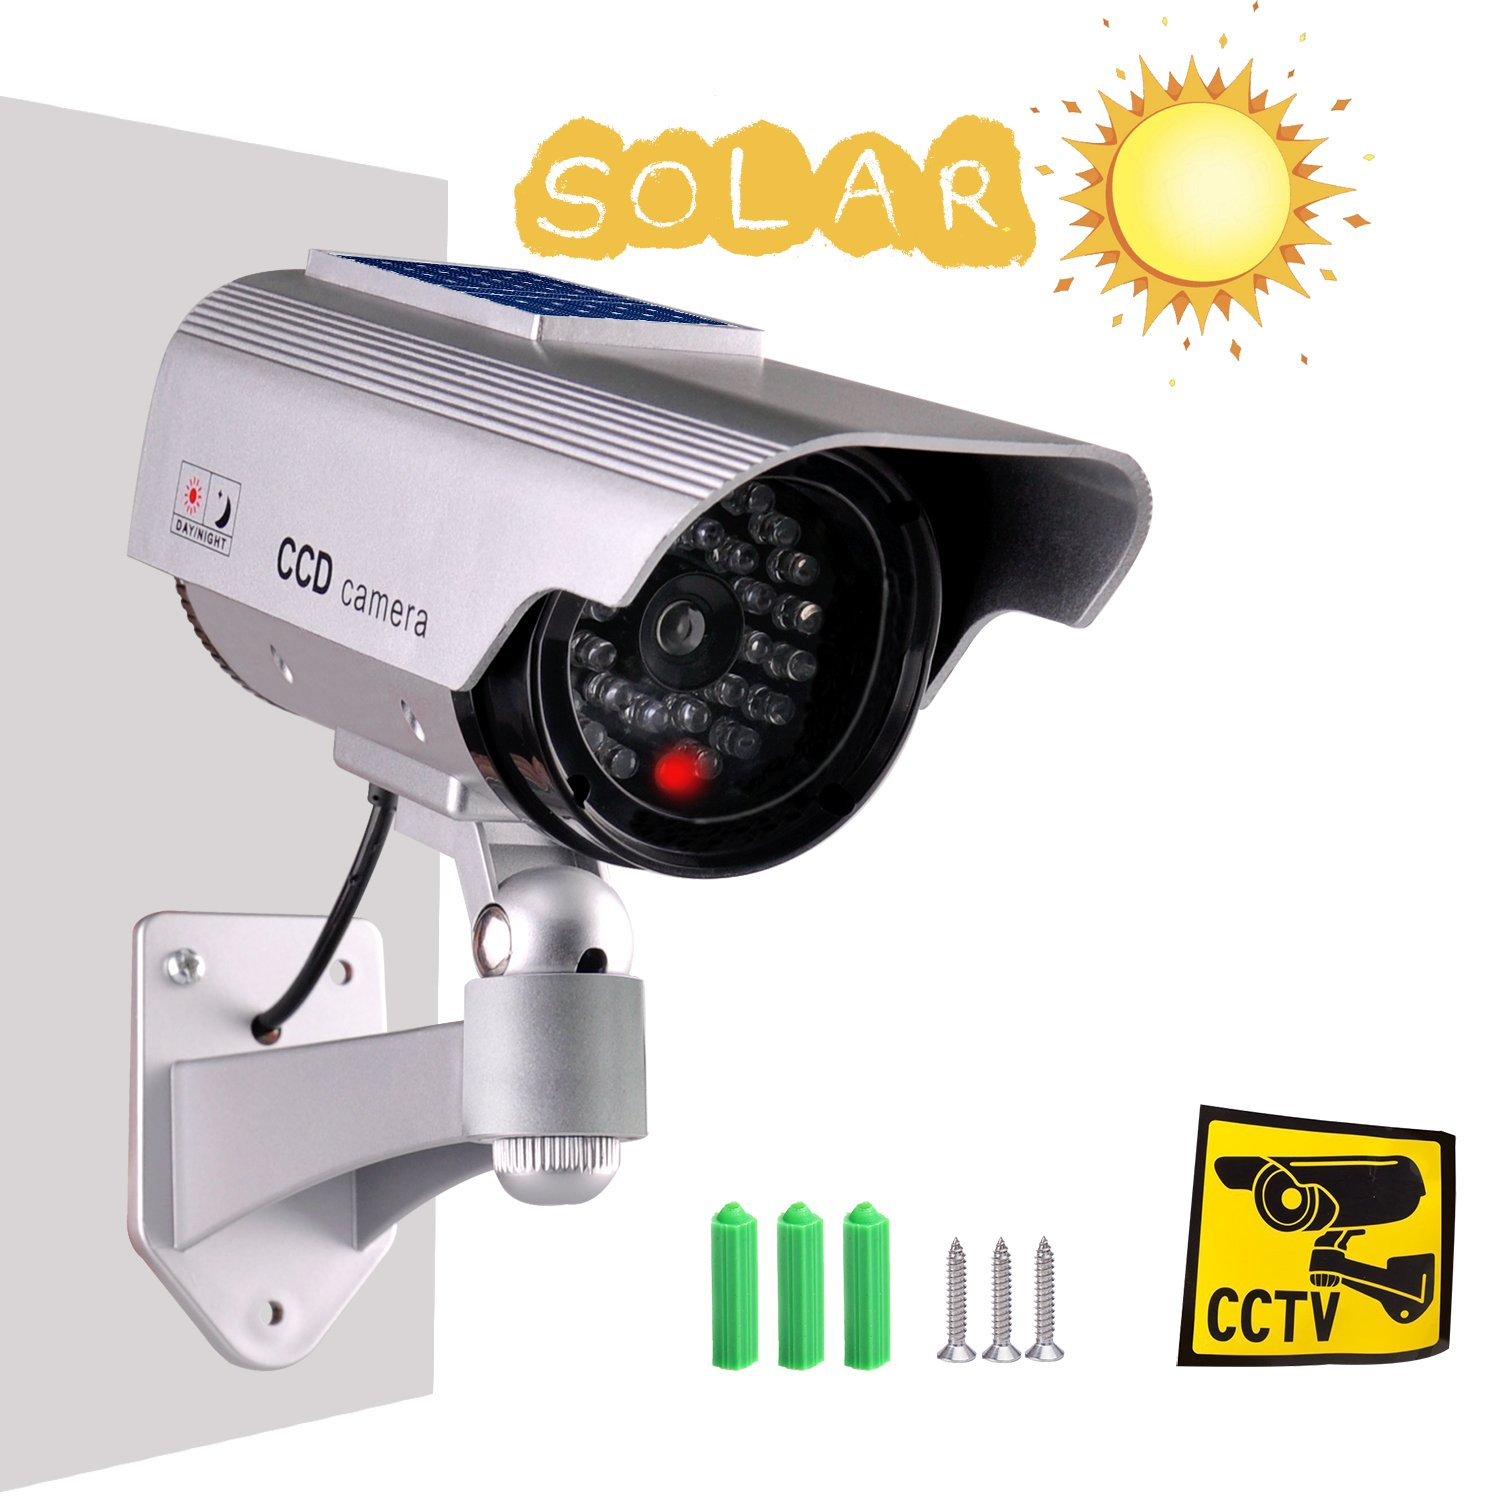 Iseeusee Solar Powered Dummy Surveillance Bullet Fake Camera with Flashing Led-Grey Battery Recharged by Sun, Home or Business, Silver by iseeusee